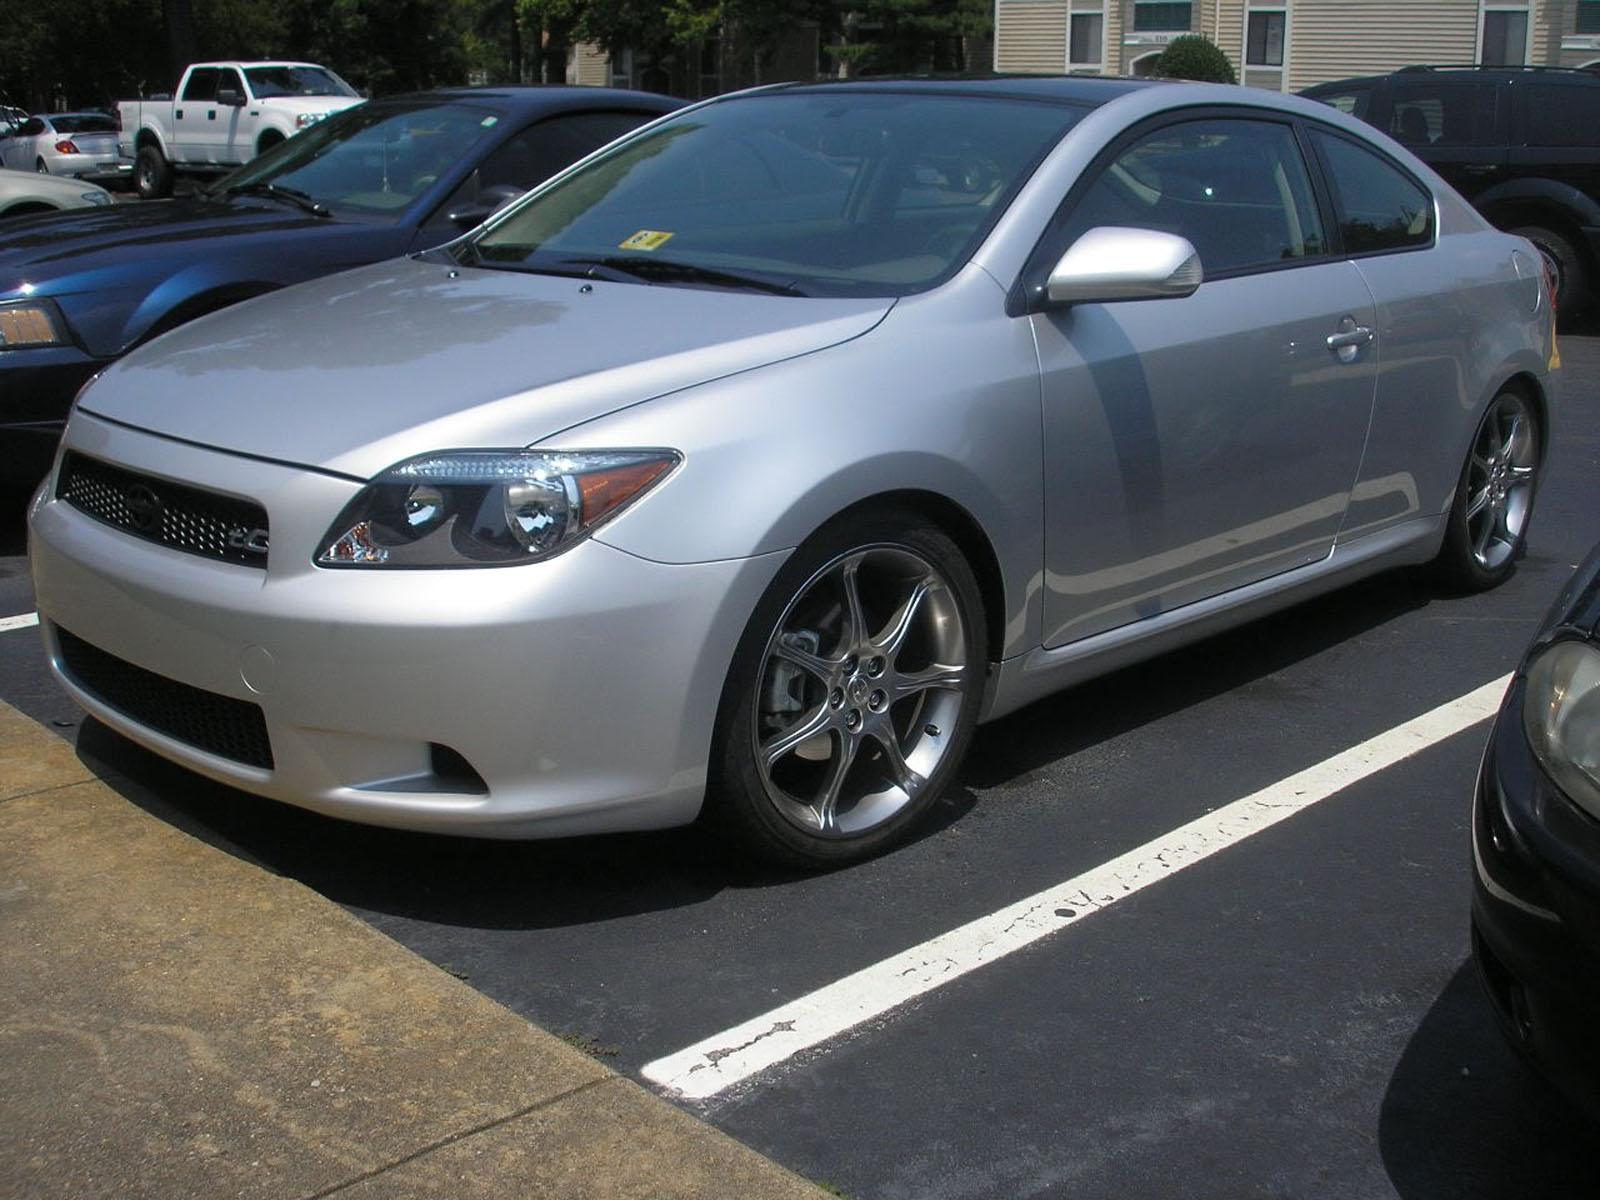 Scion Tc Turbo >> 2006 Scion Scion Tc Turbo Tc Turbo For Sale Orlando Florida